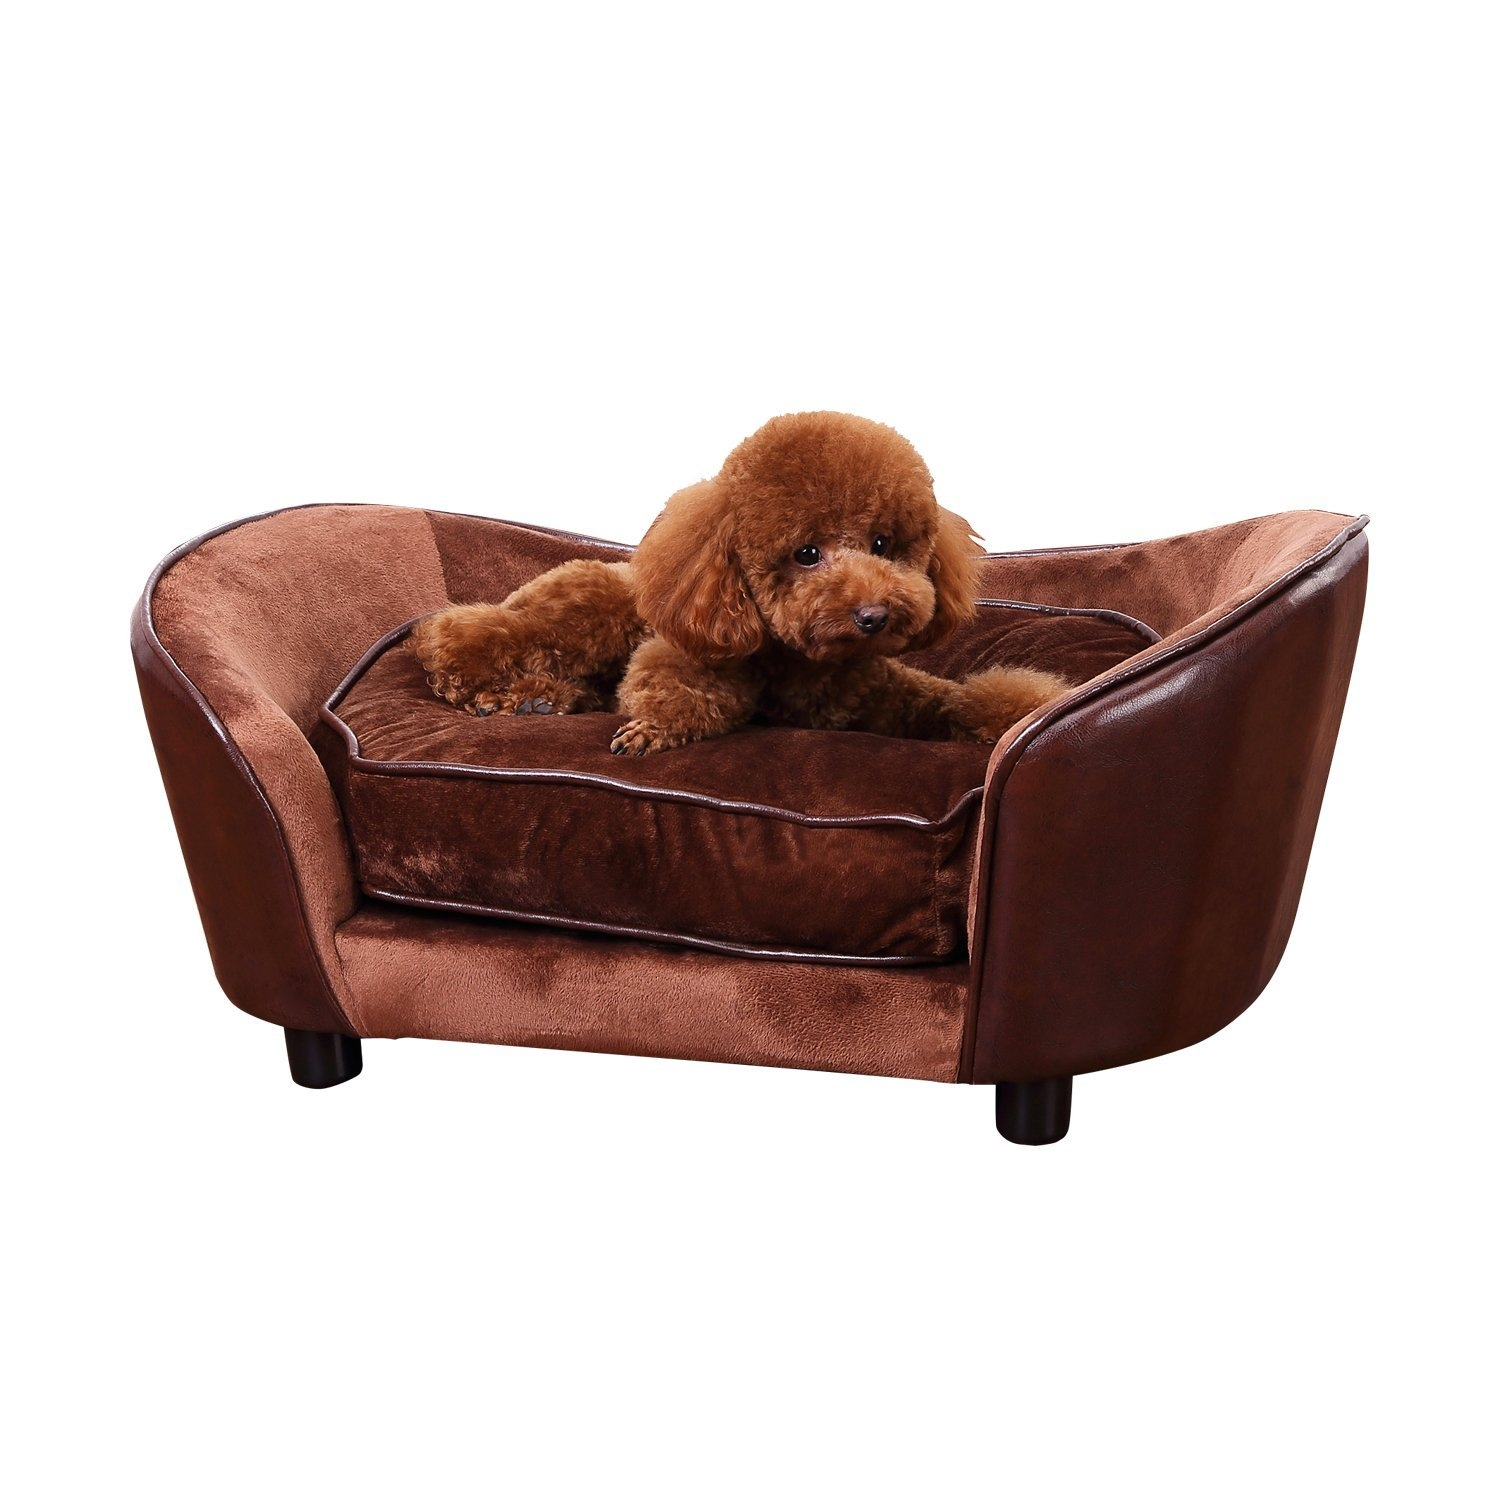 15 Ideas Of Dog Sofas And Chairs Sofa Ideas